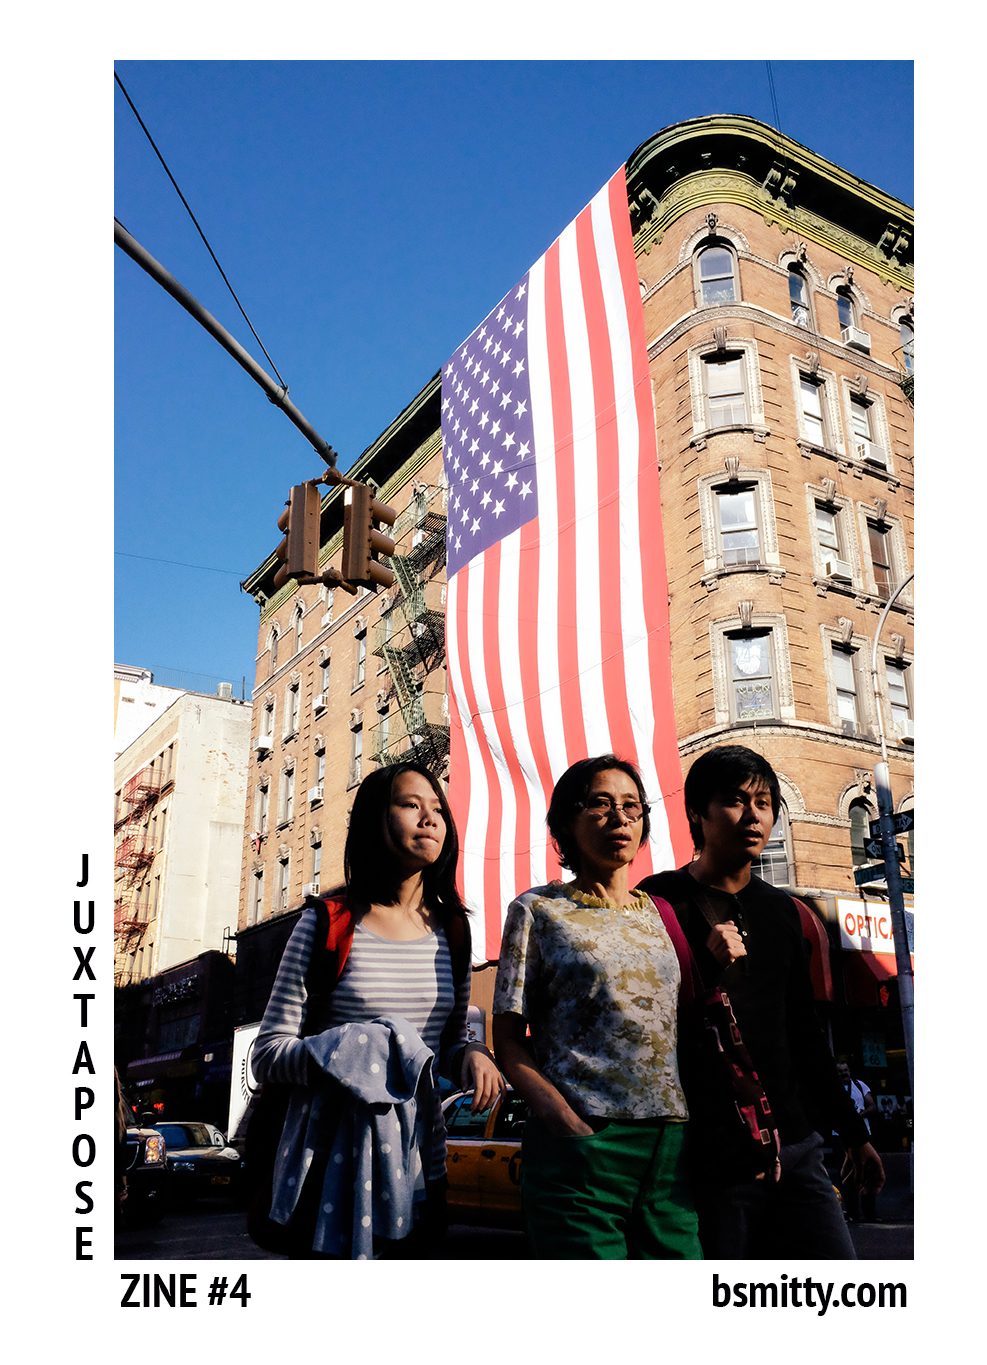 Here is the cover to my next zine 'Juxtapose'   All the photos shot with the fujifilm x100s  Keep checking back for more updates!